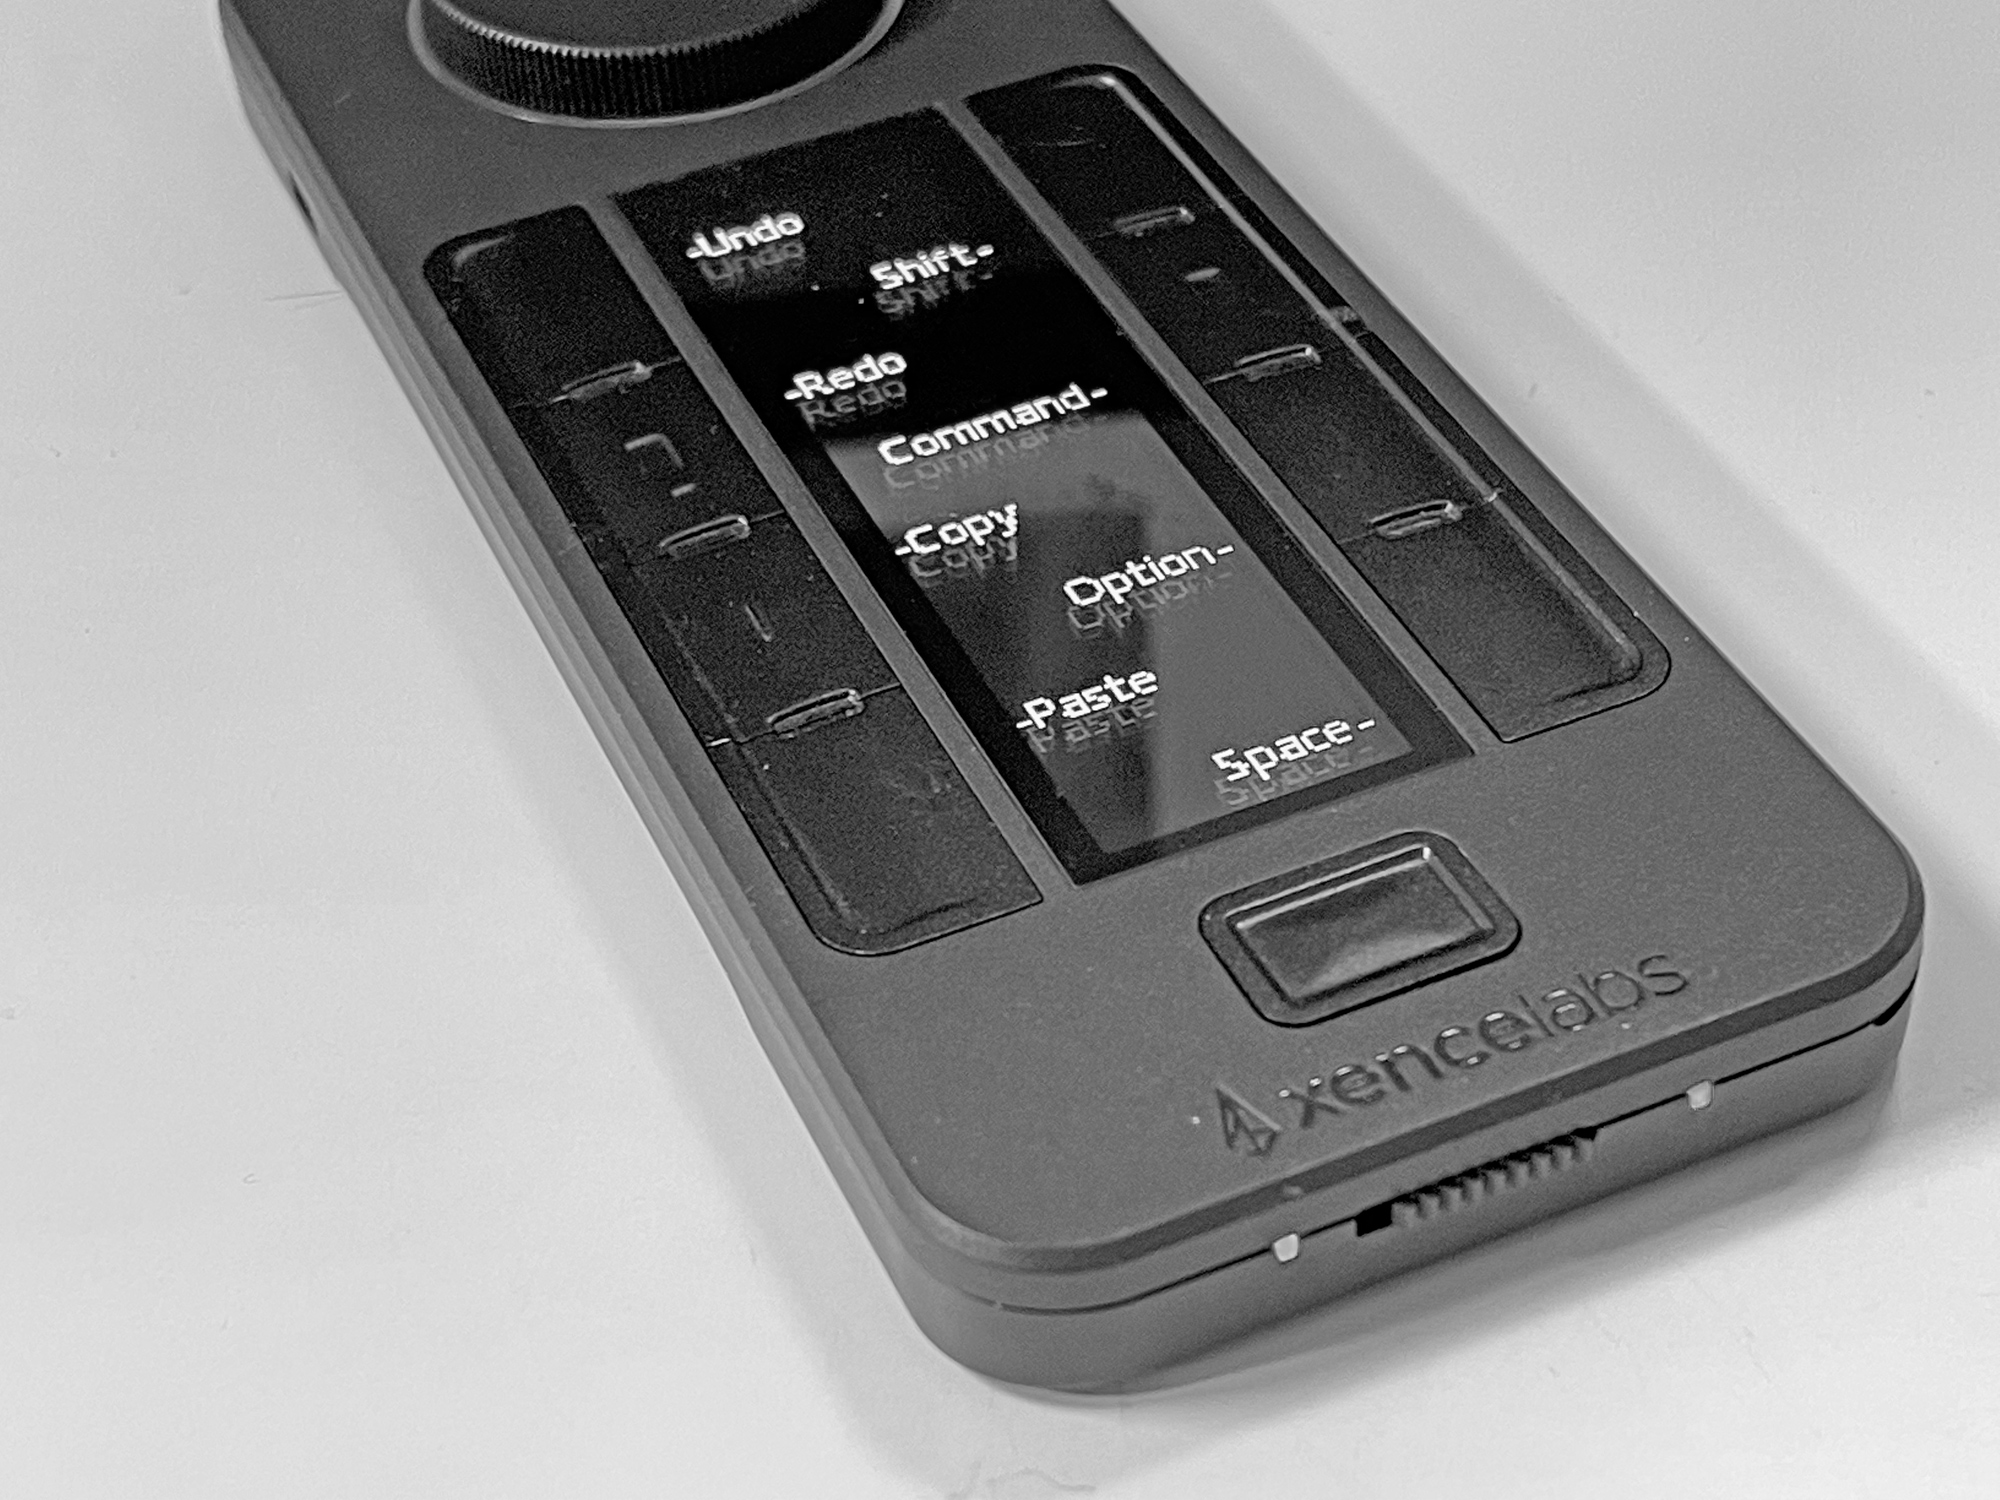 This is the remote with controls set for the buttons. I use the wheel for zooming.